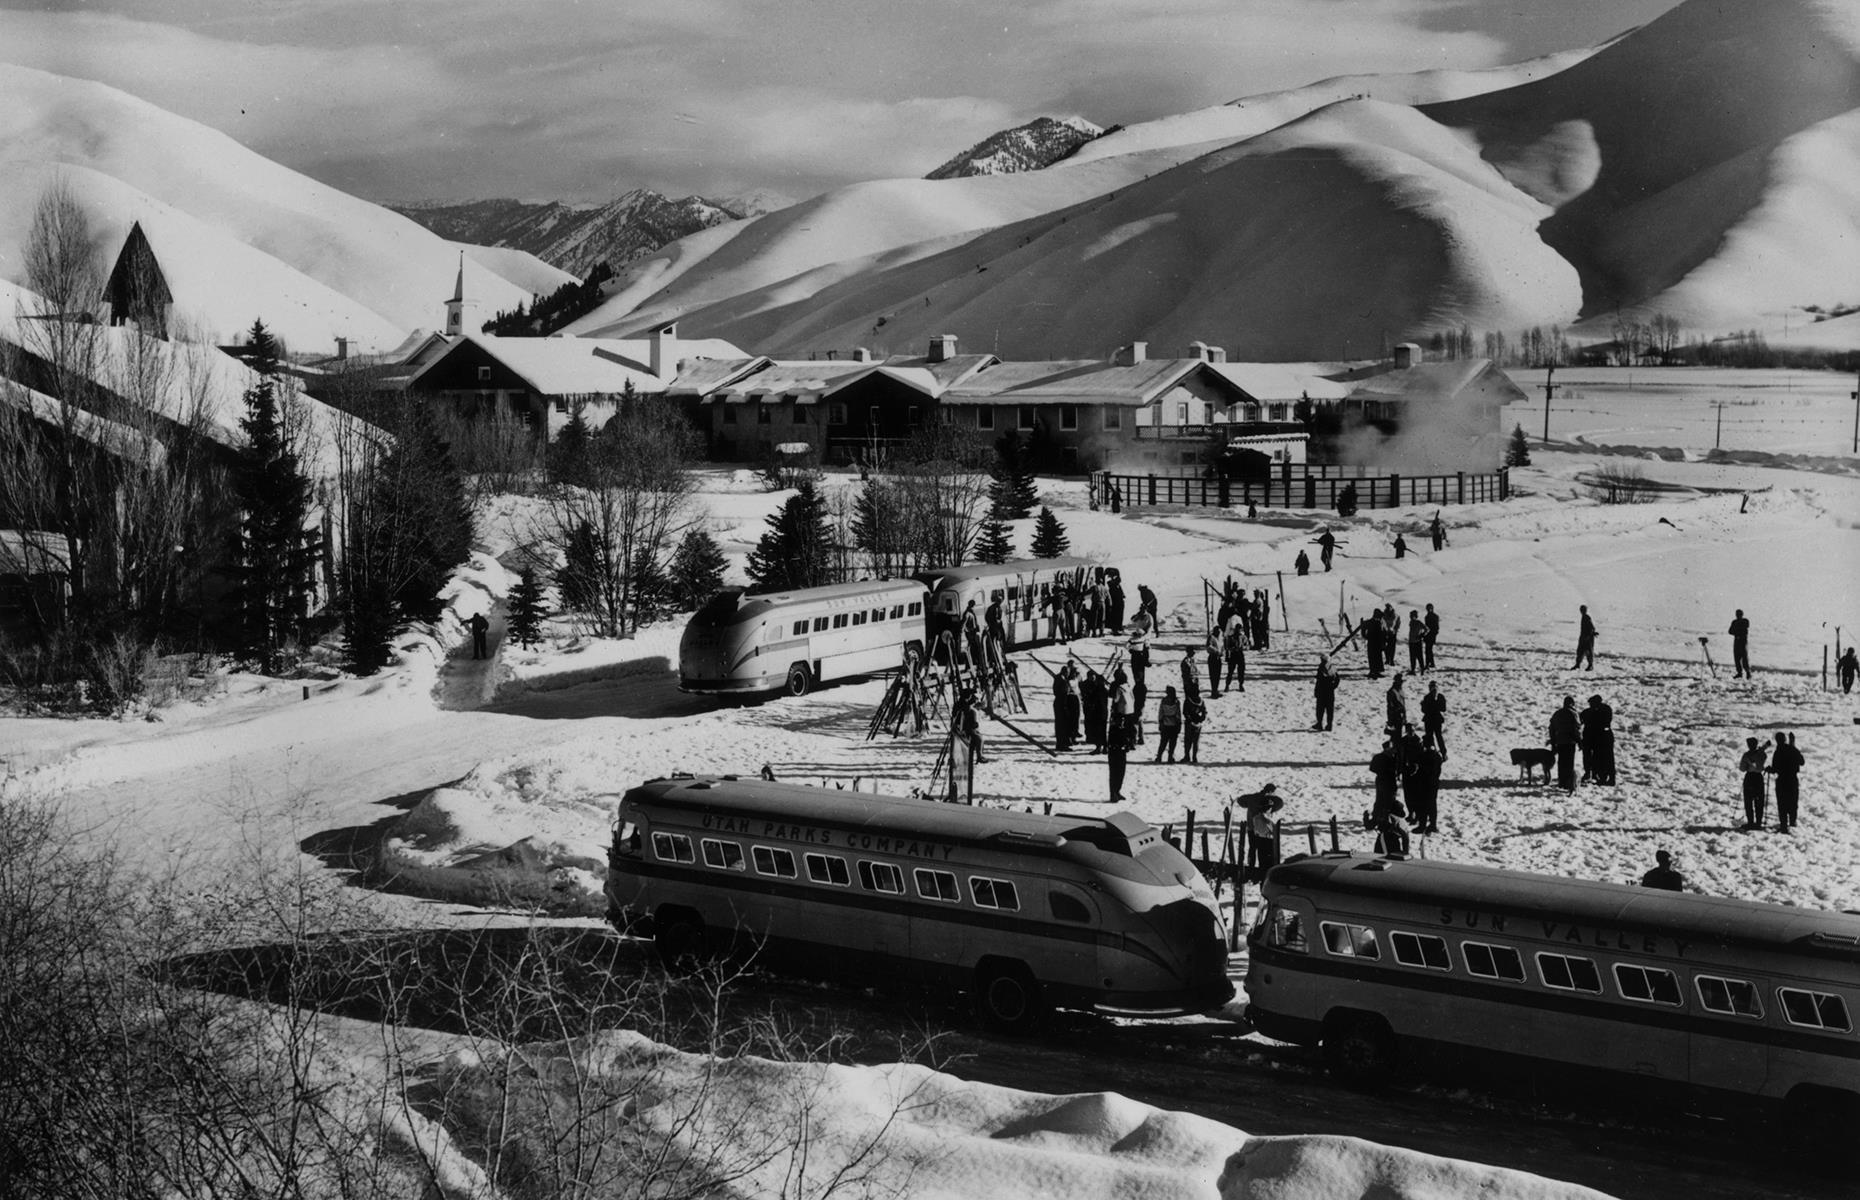 Slide 27 of 48: Skiing became more popular and accessible throughout this decade, mostly due to the continued development of recreational skis. Idaho's Sun Valley, one of America's earliest ski resorts, thrived throughout the 1950s, welcoming celebrities and members of high society. It was also the site of the world's first chairlifts, which were invented by Union Pacific Railroad engineer James Curran.